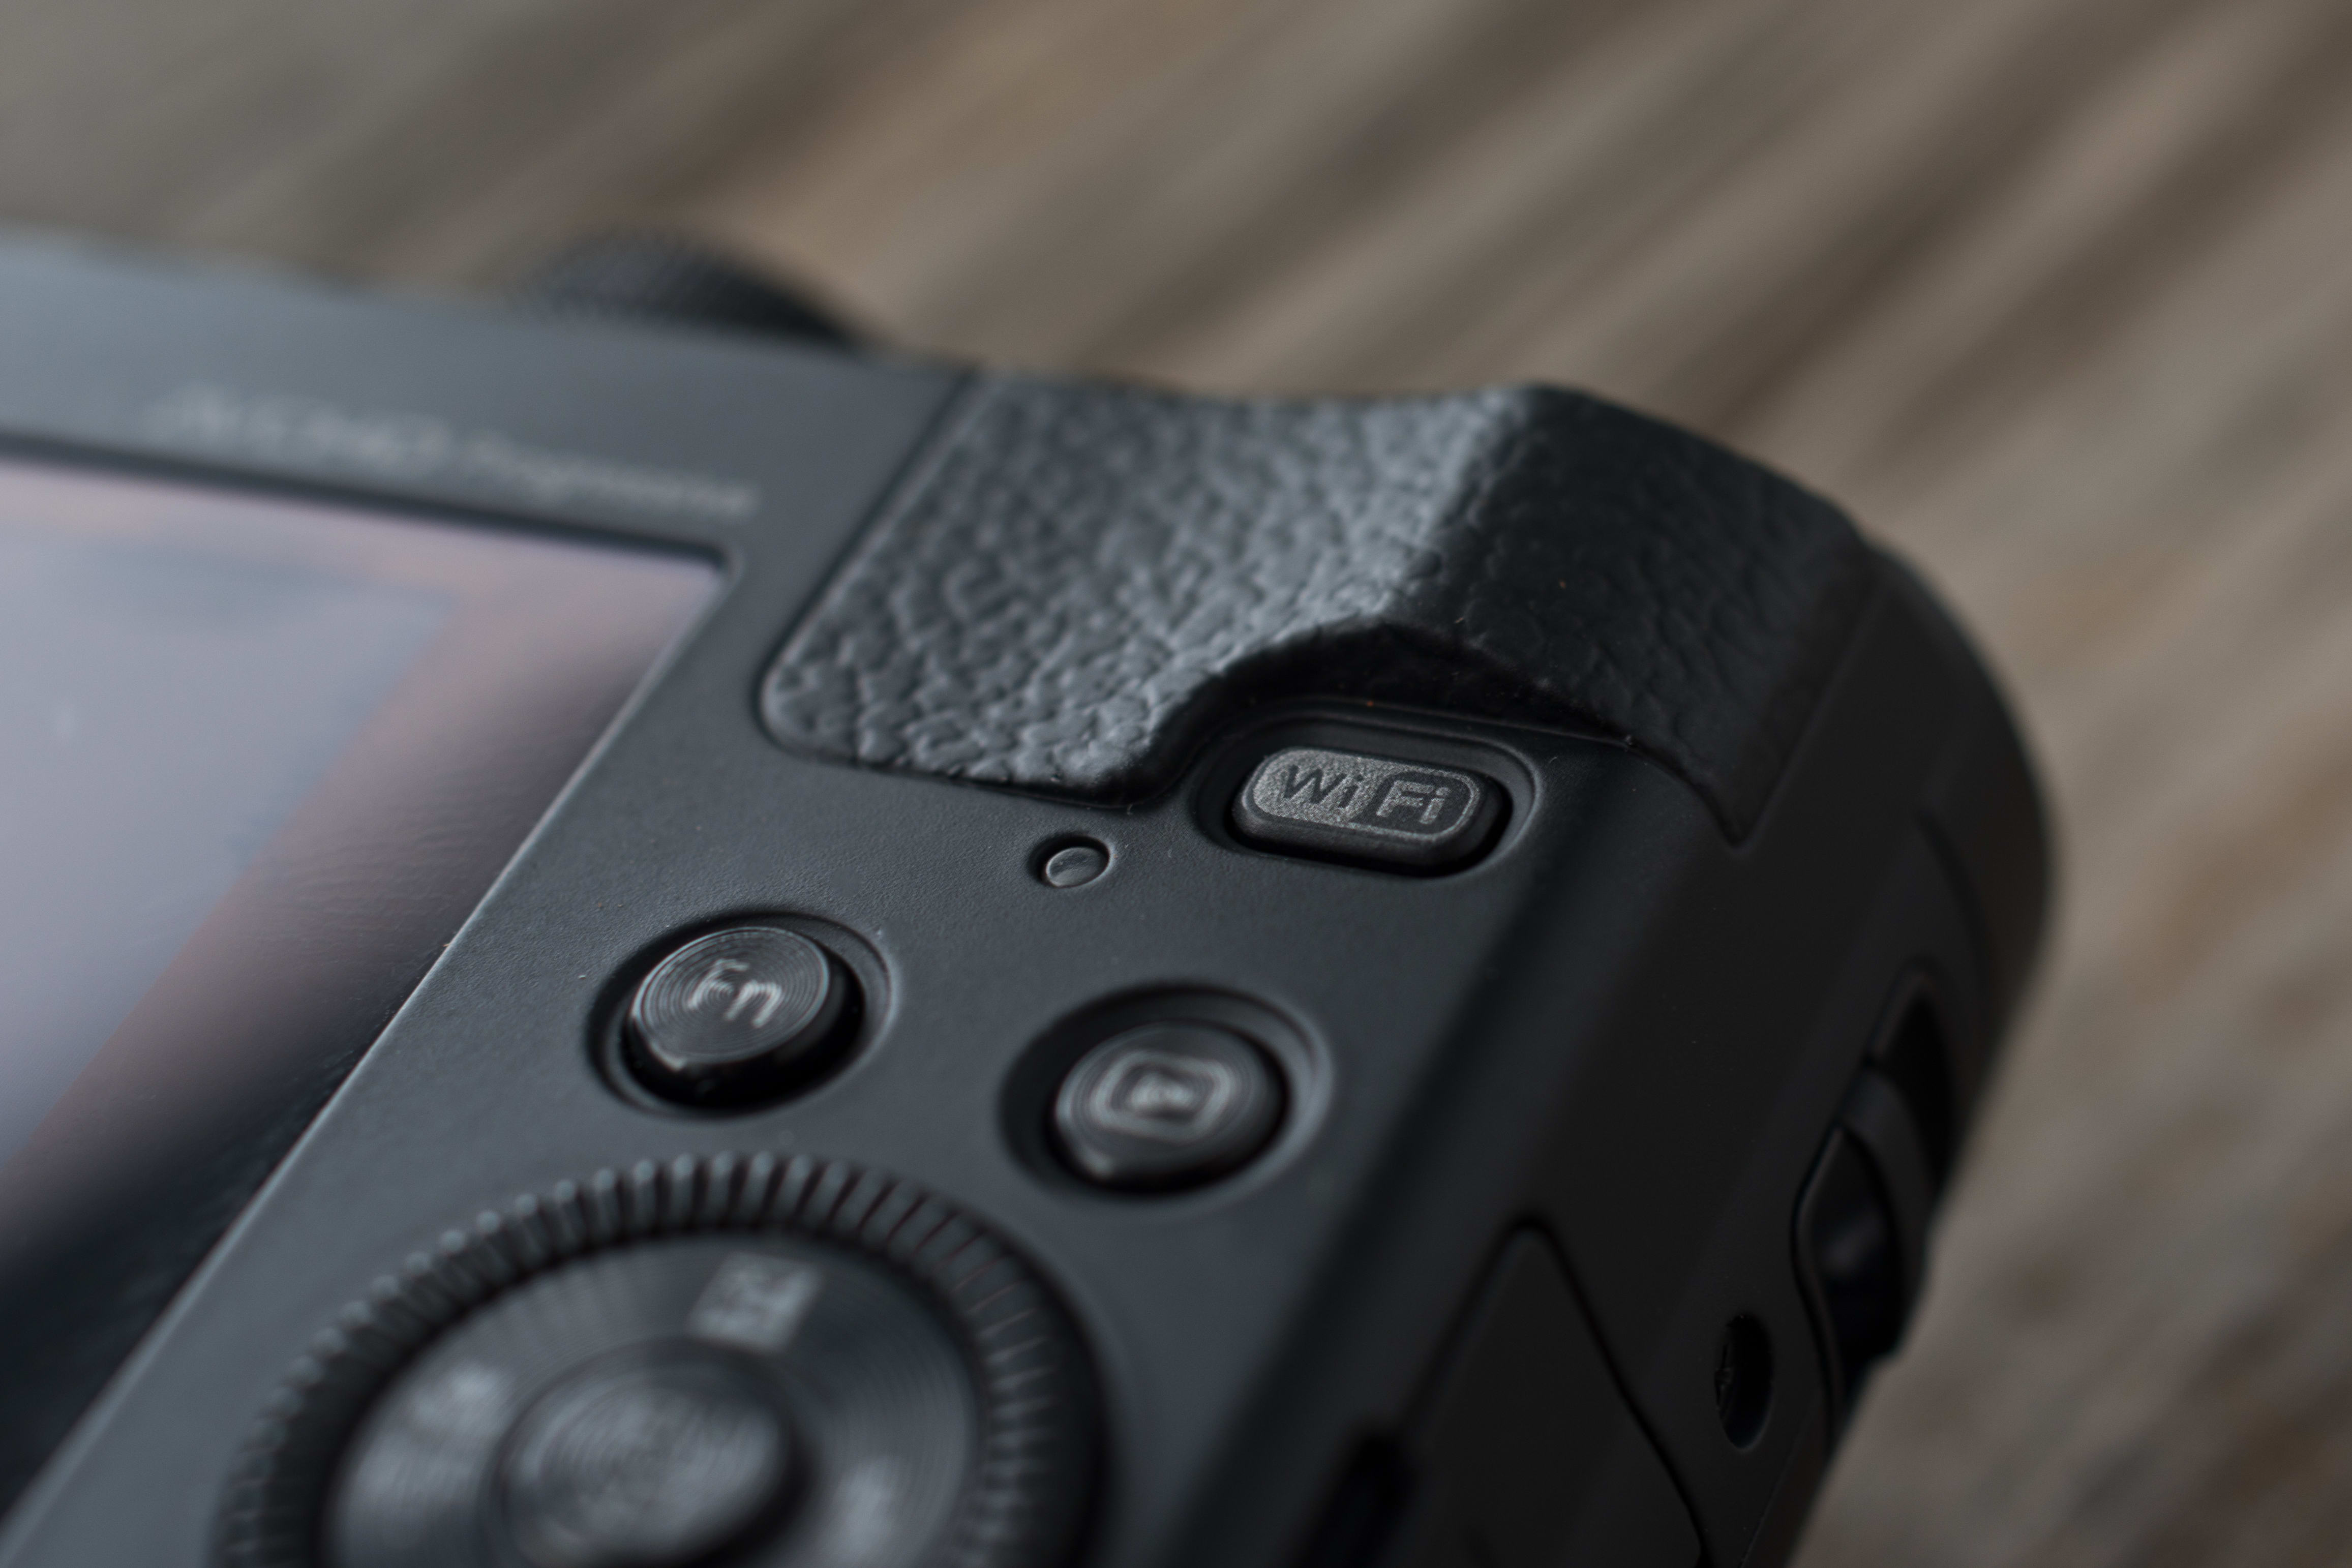 A picture of the Panasonic Lumix ZS40's WiFi button.